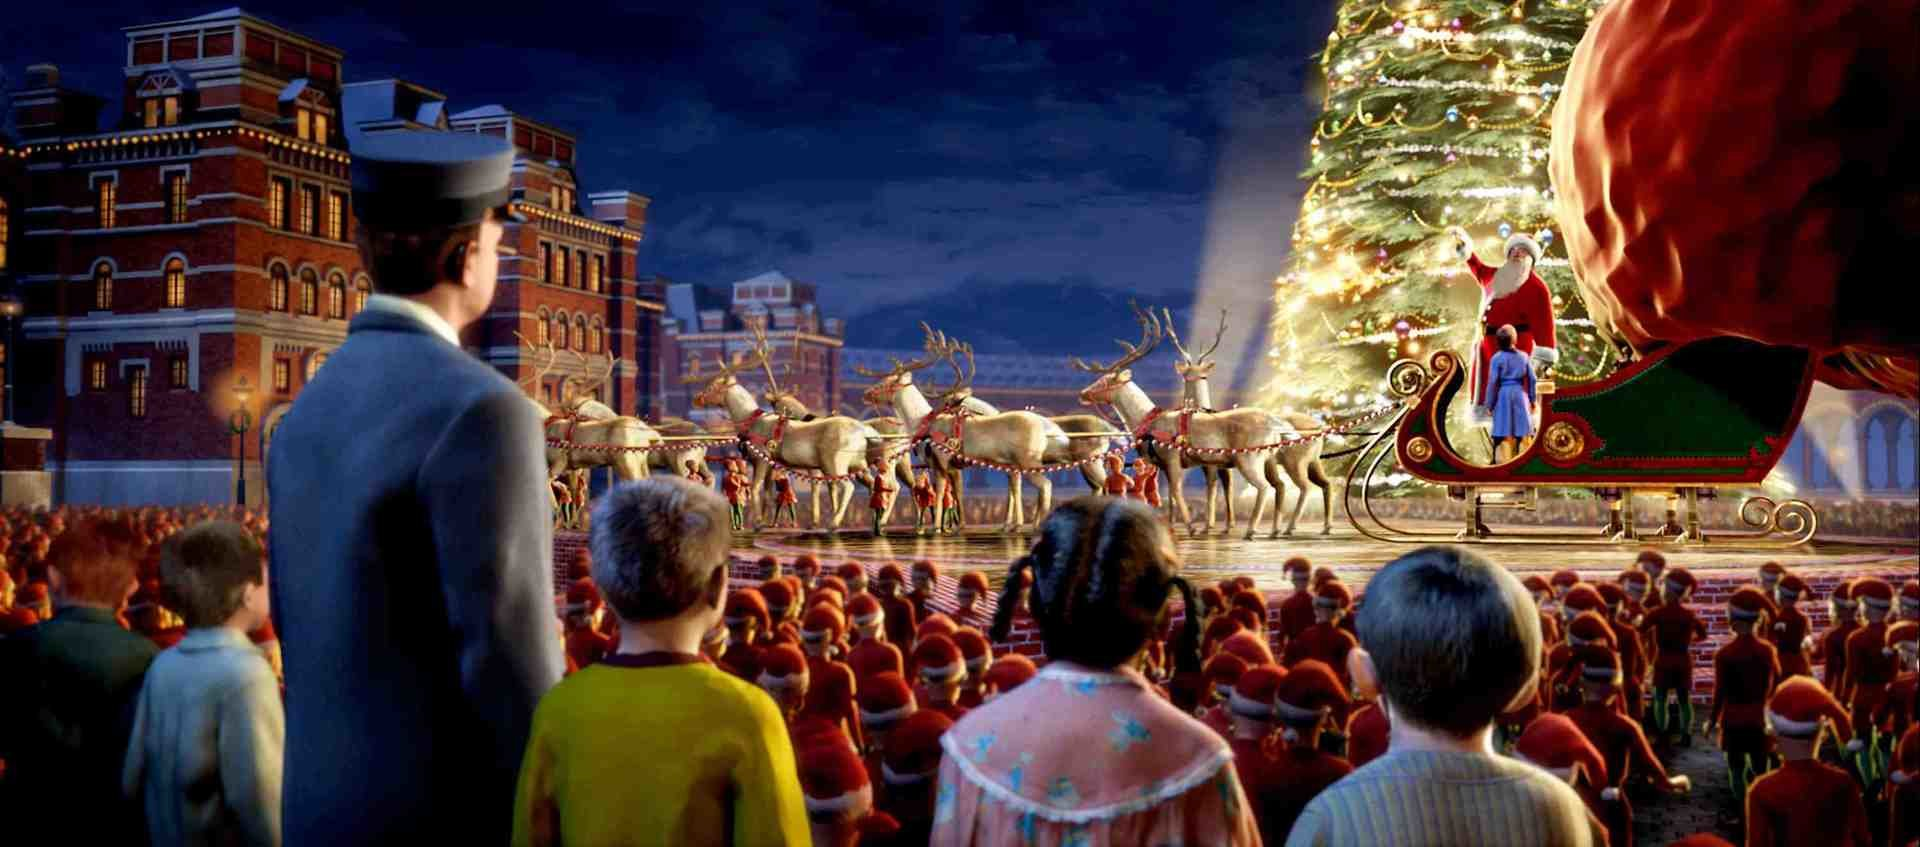 Film: The Polar Express feature image